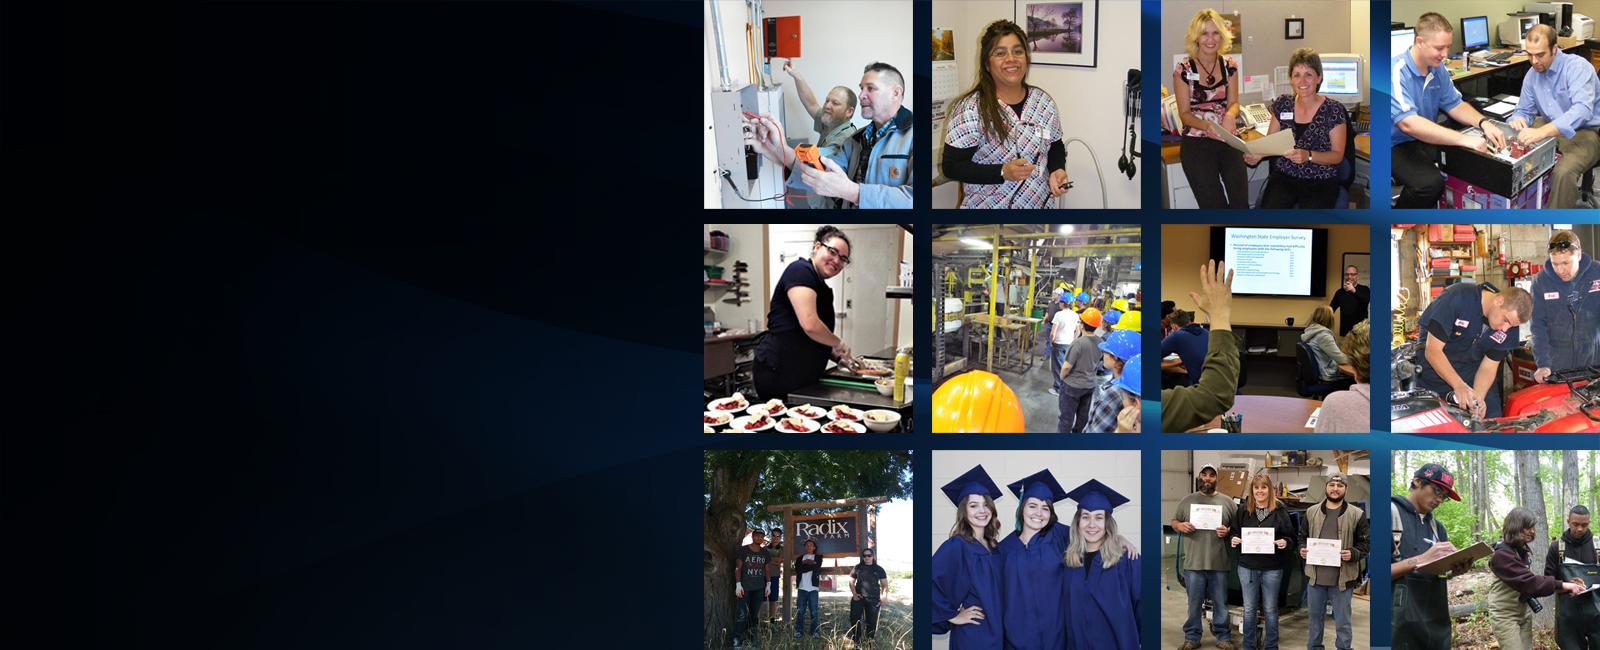 SkillSource's cover image depicts various real job seekers and business customers in a wide variety of career settings.